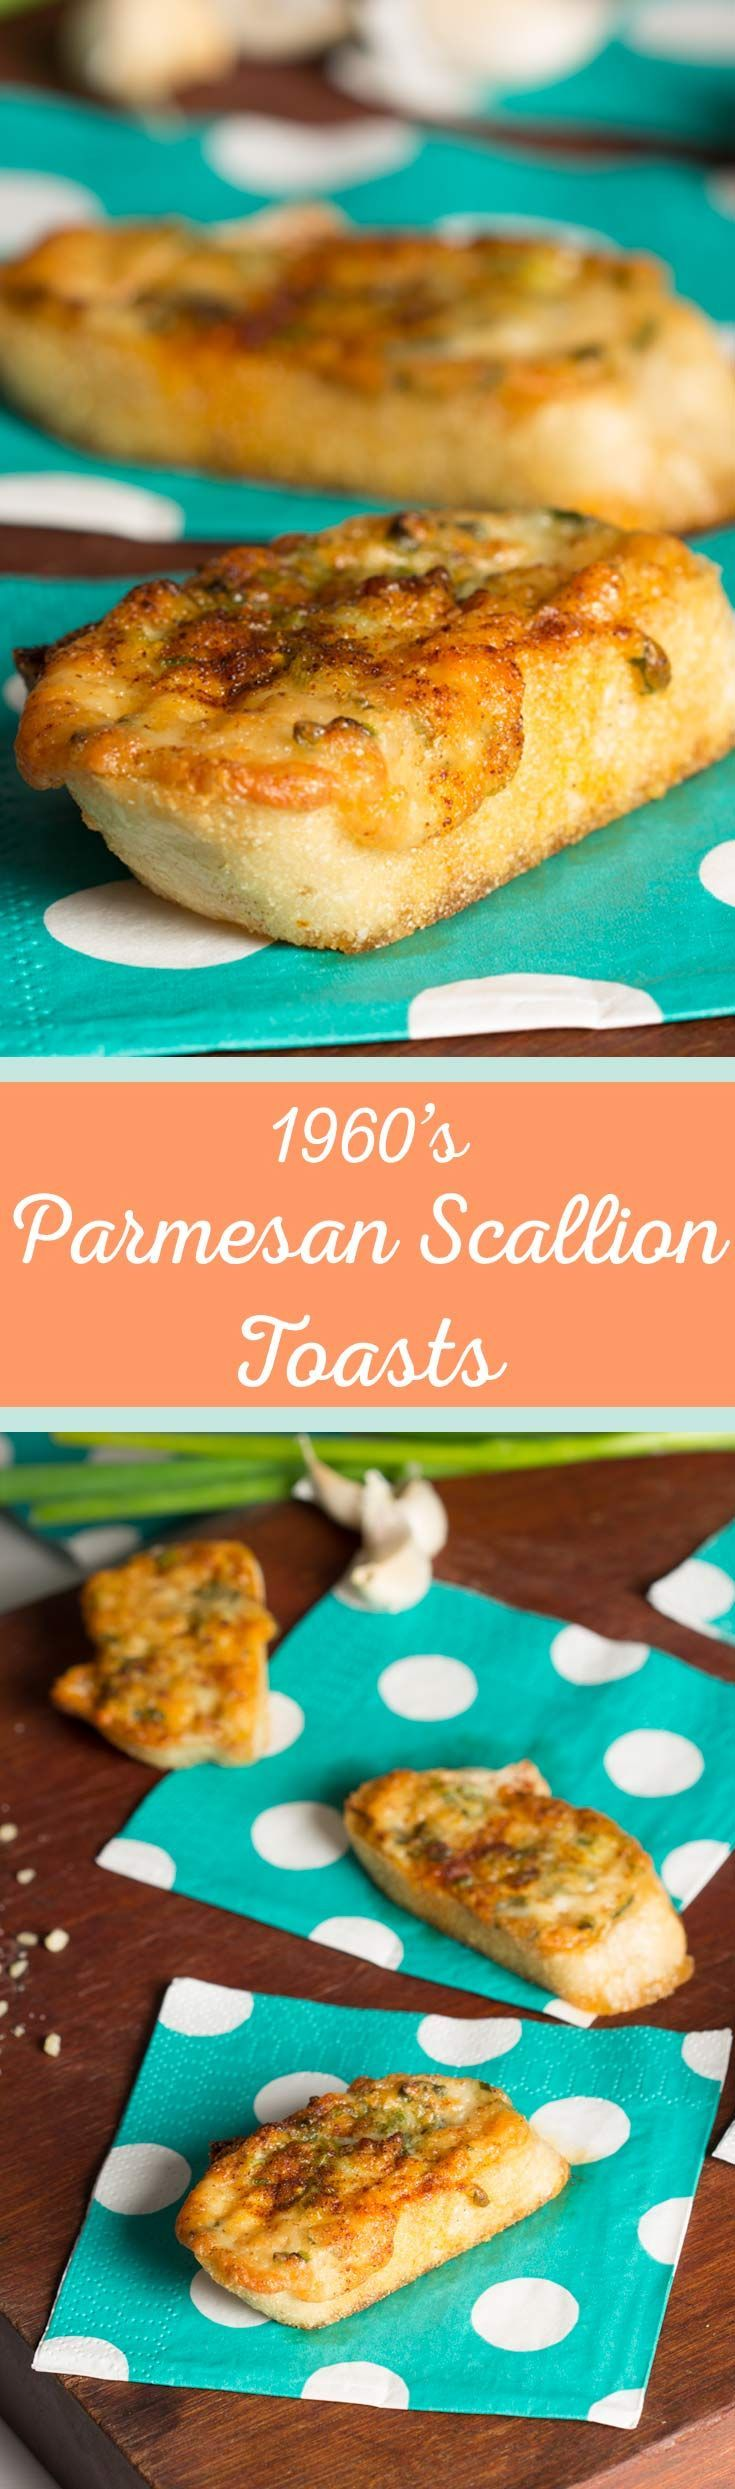 Parmesan Scallion Toasts - This vintage inspired recipe from the 1960's is a quick, easy, and tasty recipe for impromptu get togethers - http://cupofzest.com